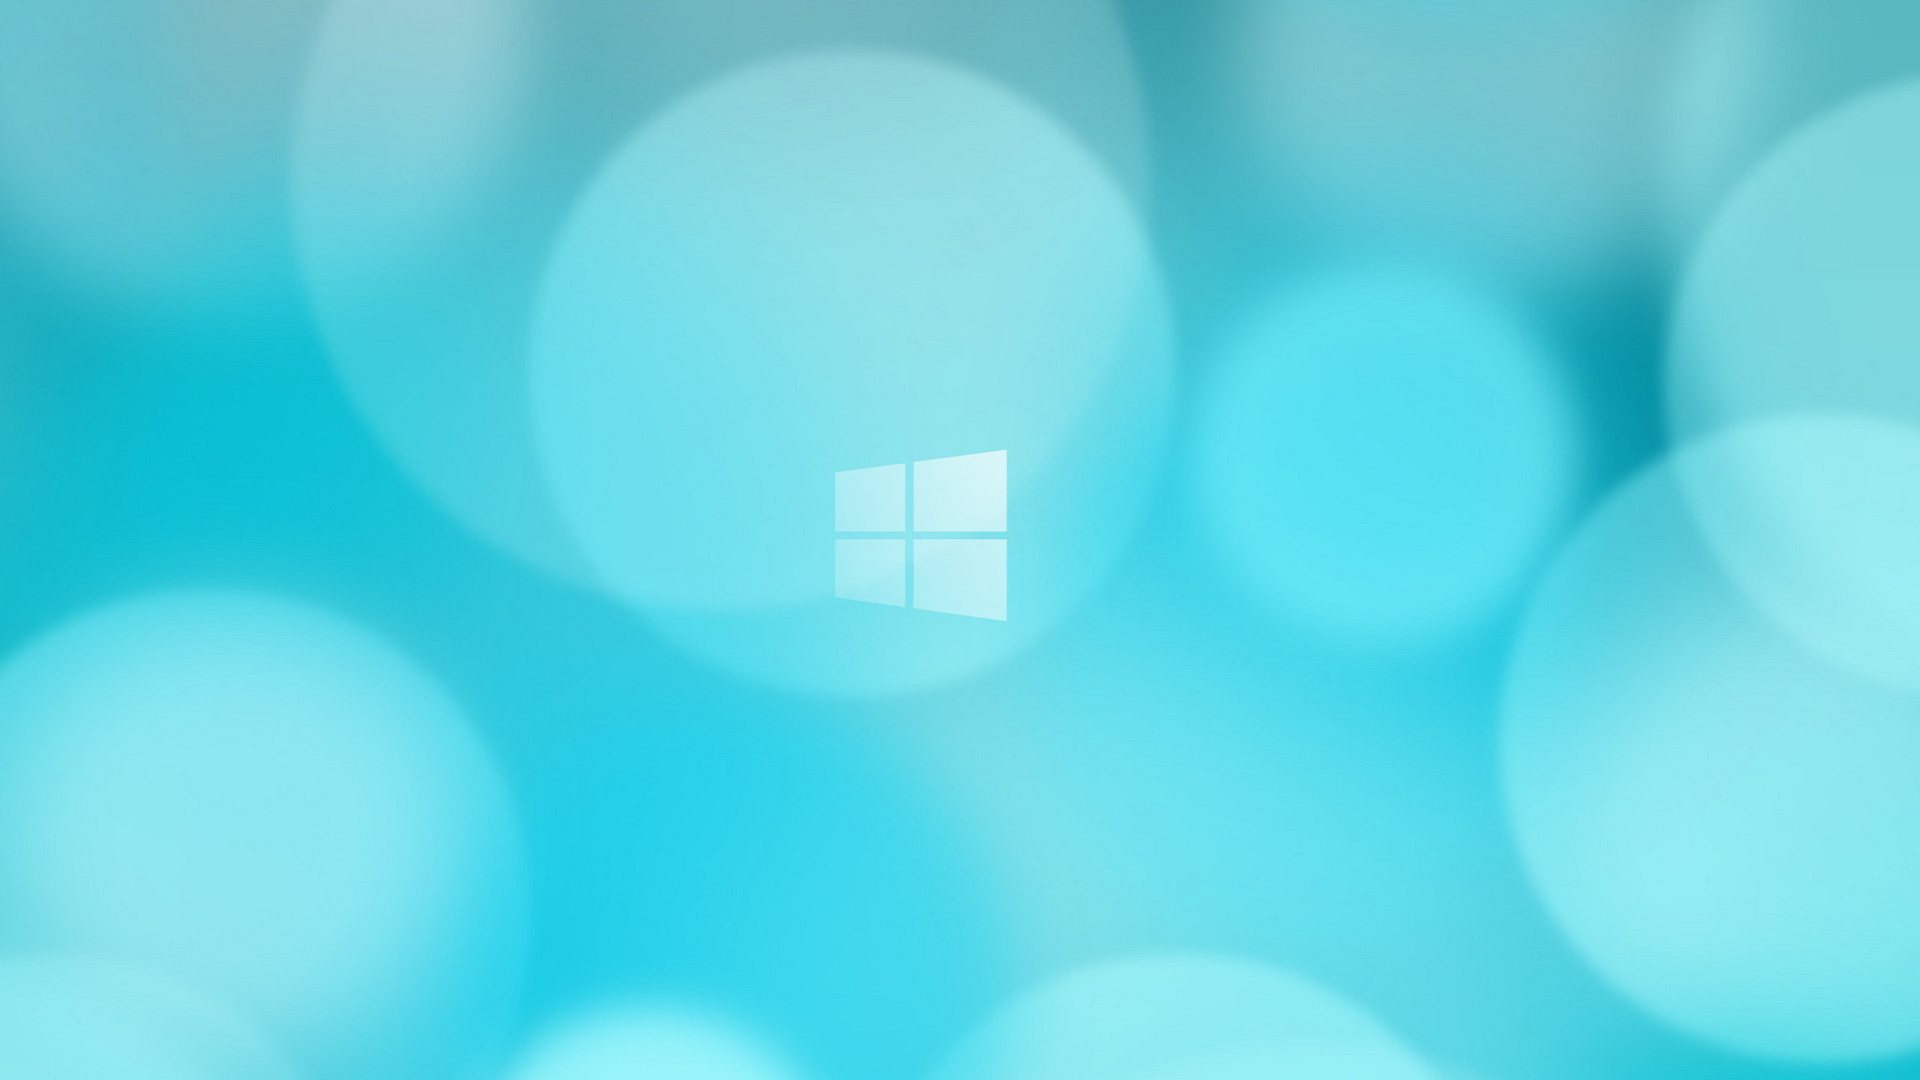 Windows wallpaper 779892 for Window background